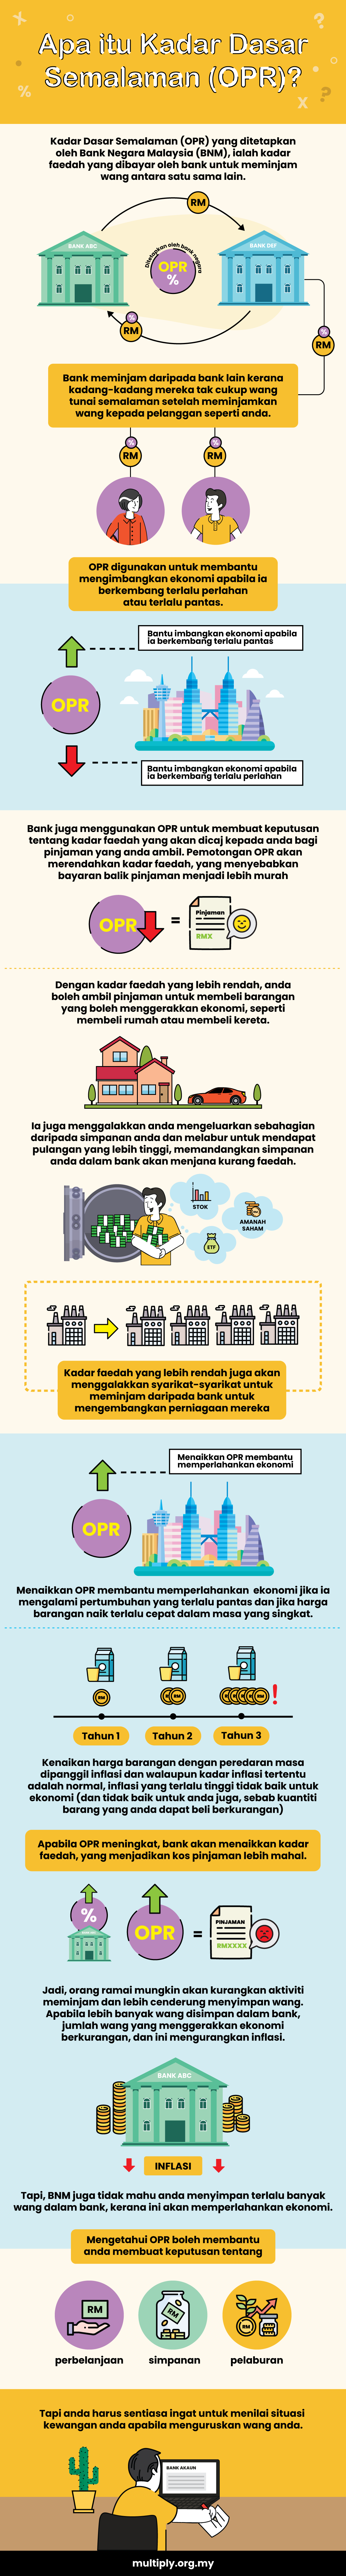 What is the Overnight Policy Rate (OPR)? 3 - Multiply - Multiply Explains